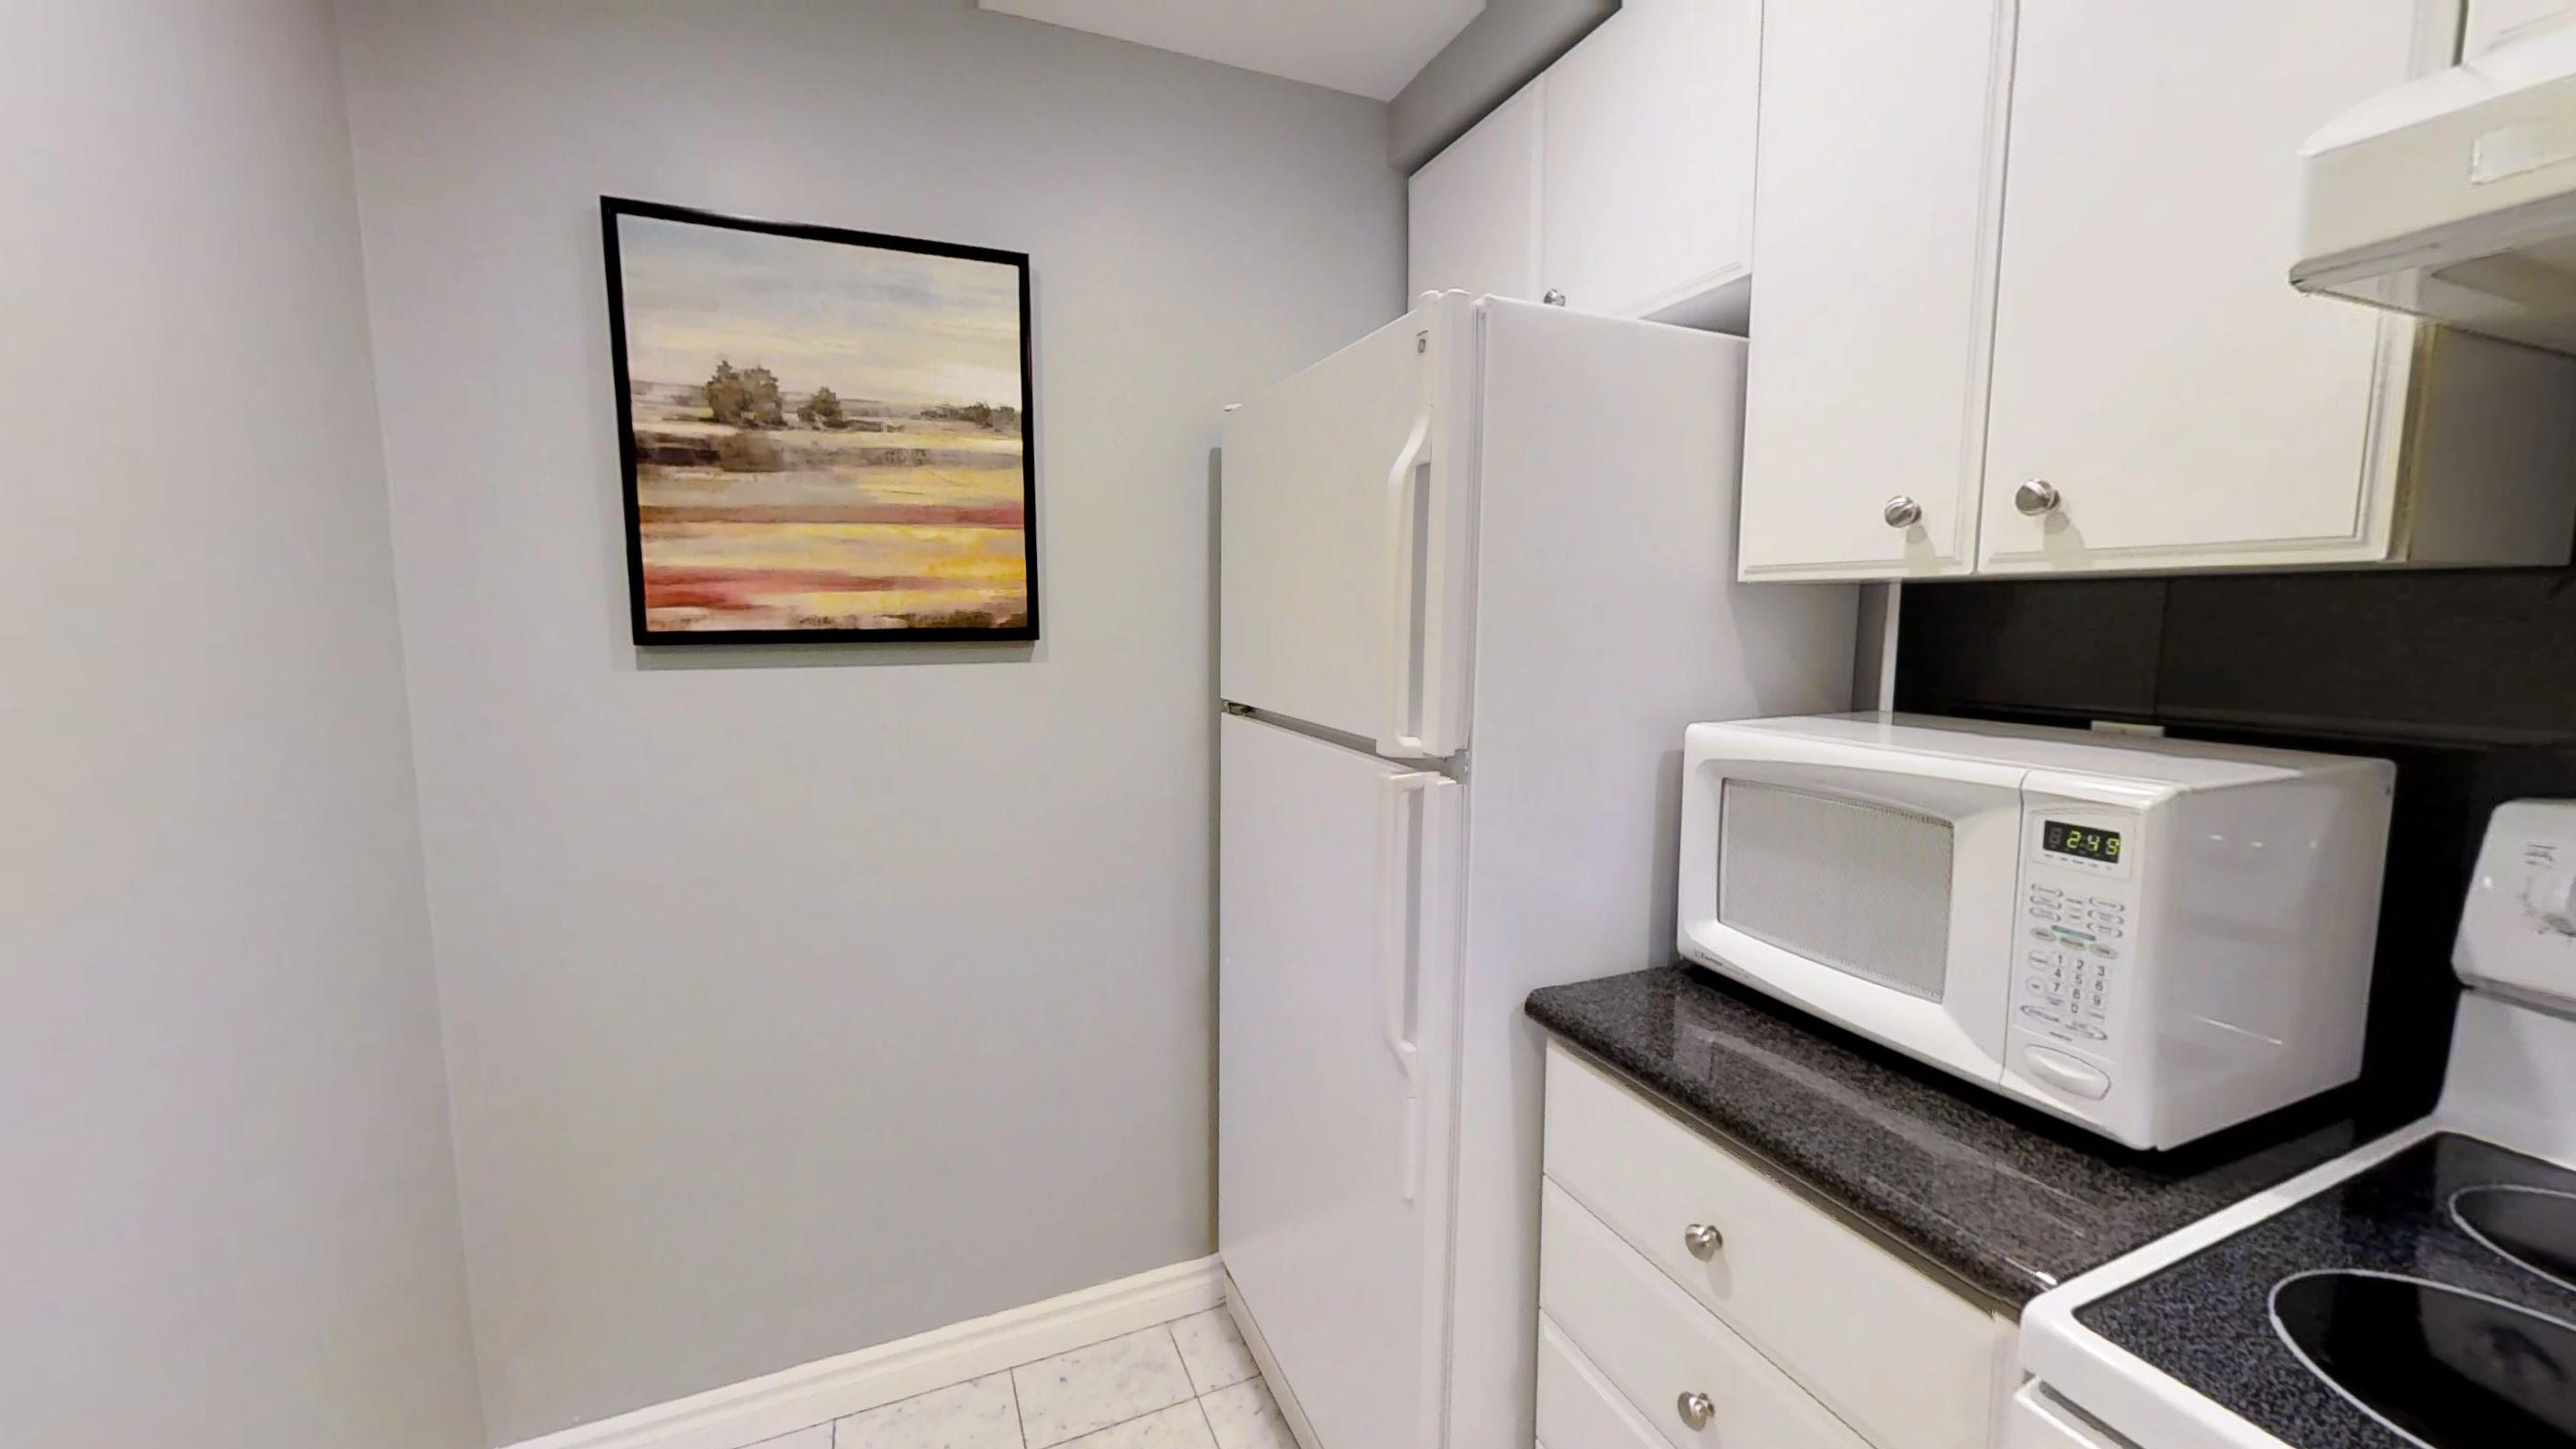 the wall art and a microwave in the kitchen of a fully furnished apartment in downtown Toronto, close 168 Simcoe Street